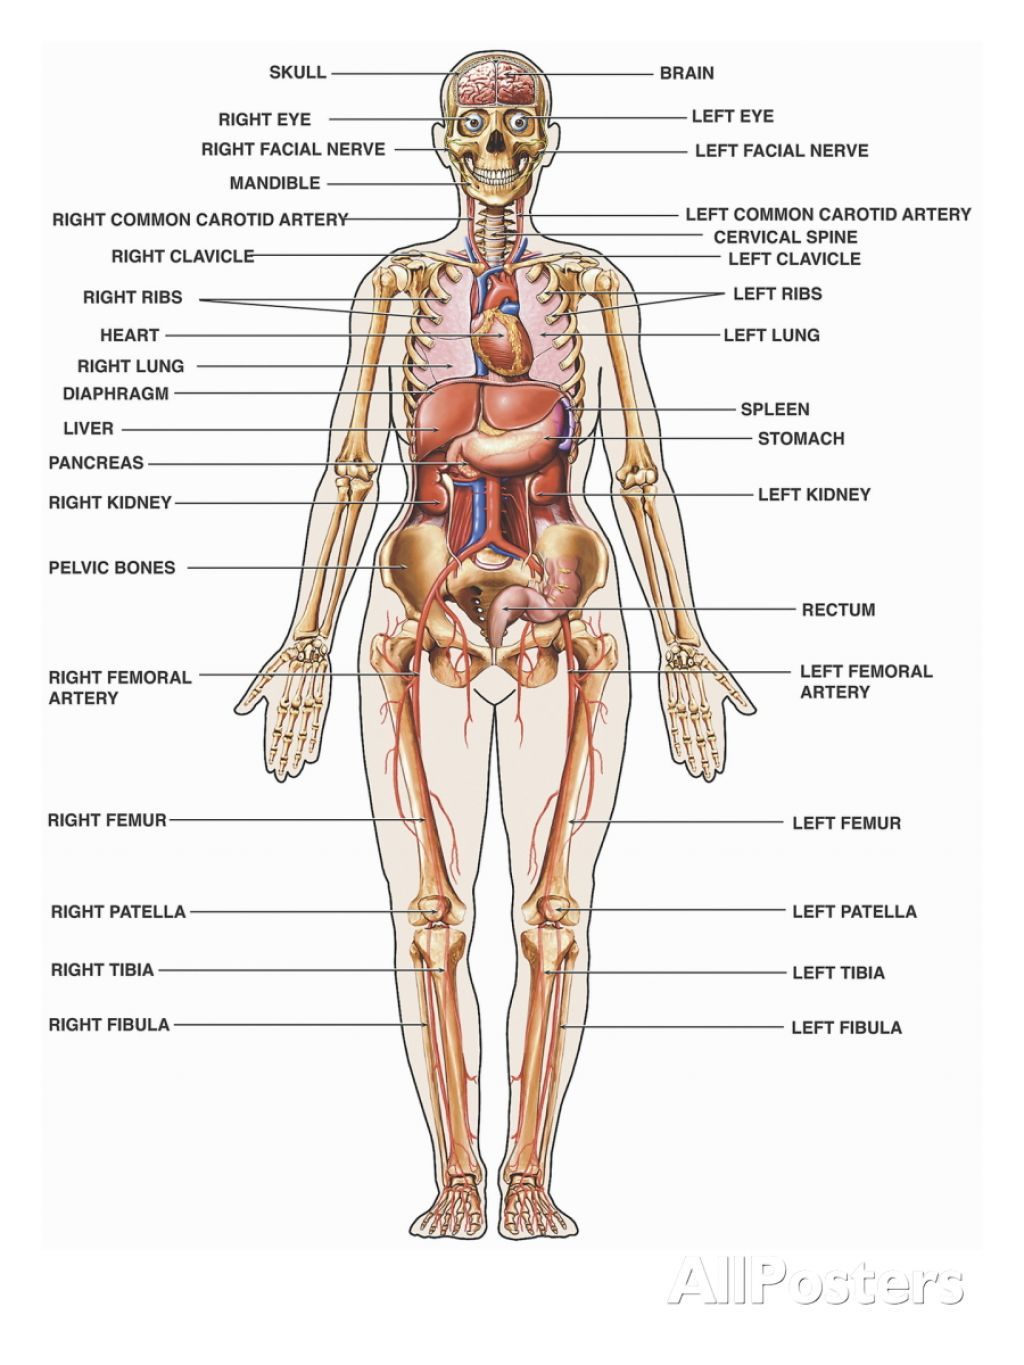 Anatomy Of The Human Body System Growablegreetings Pinterest